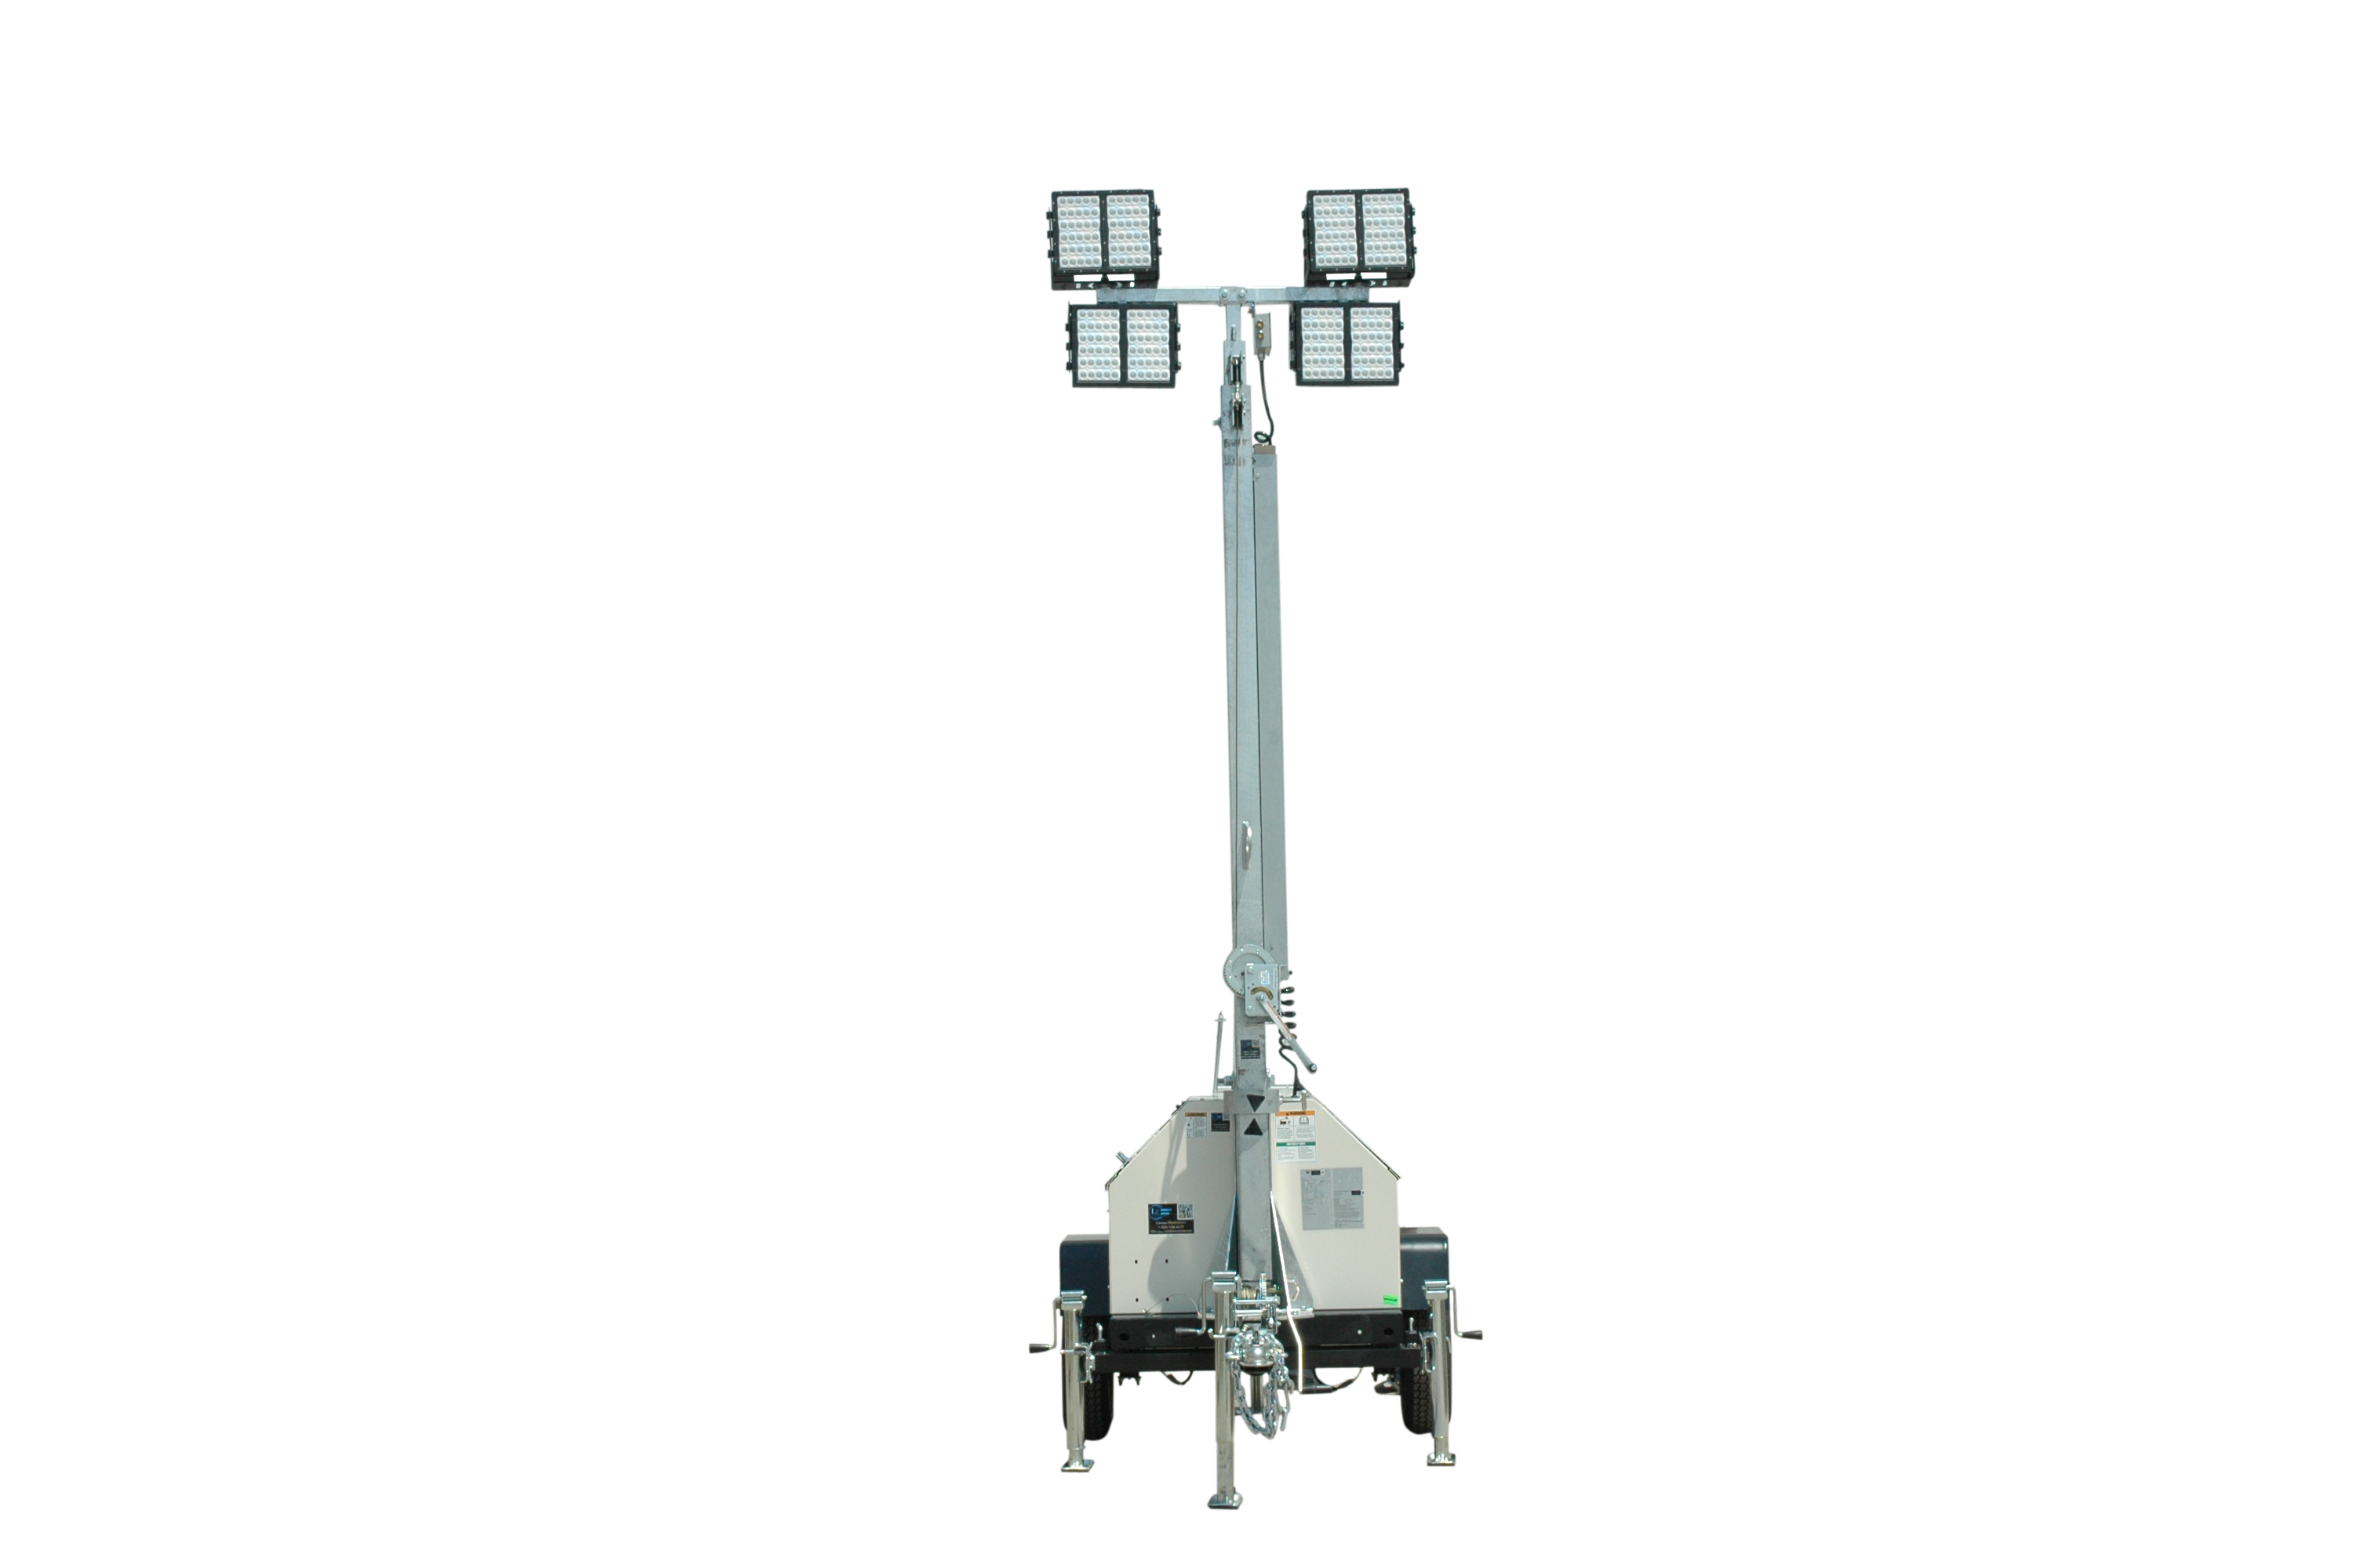 Mobile Led Light Tower Withsel Generator Released By